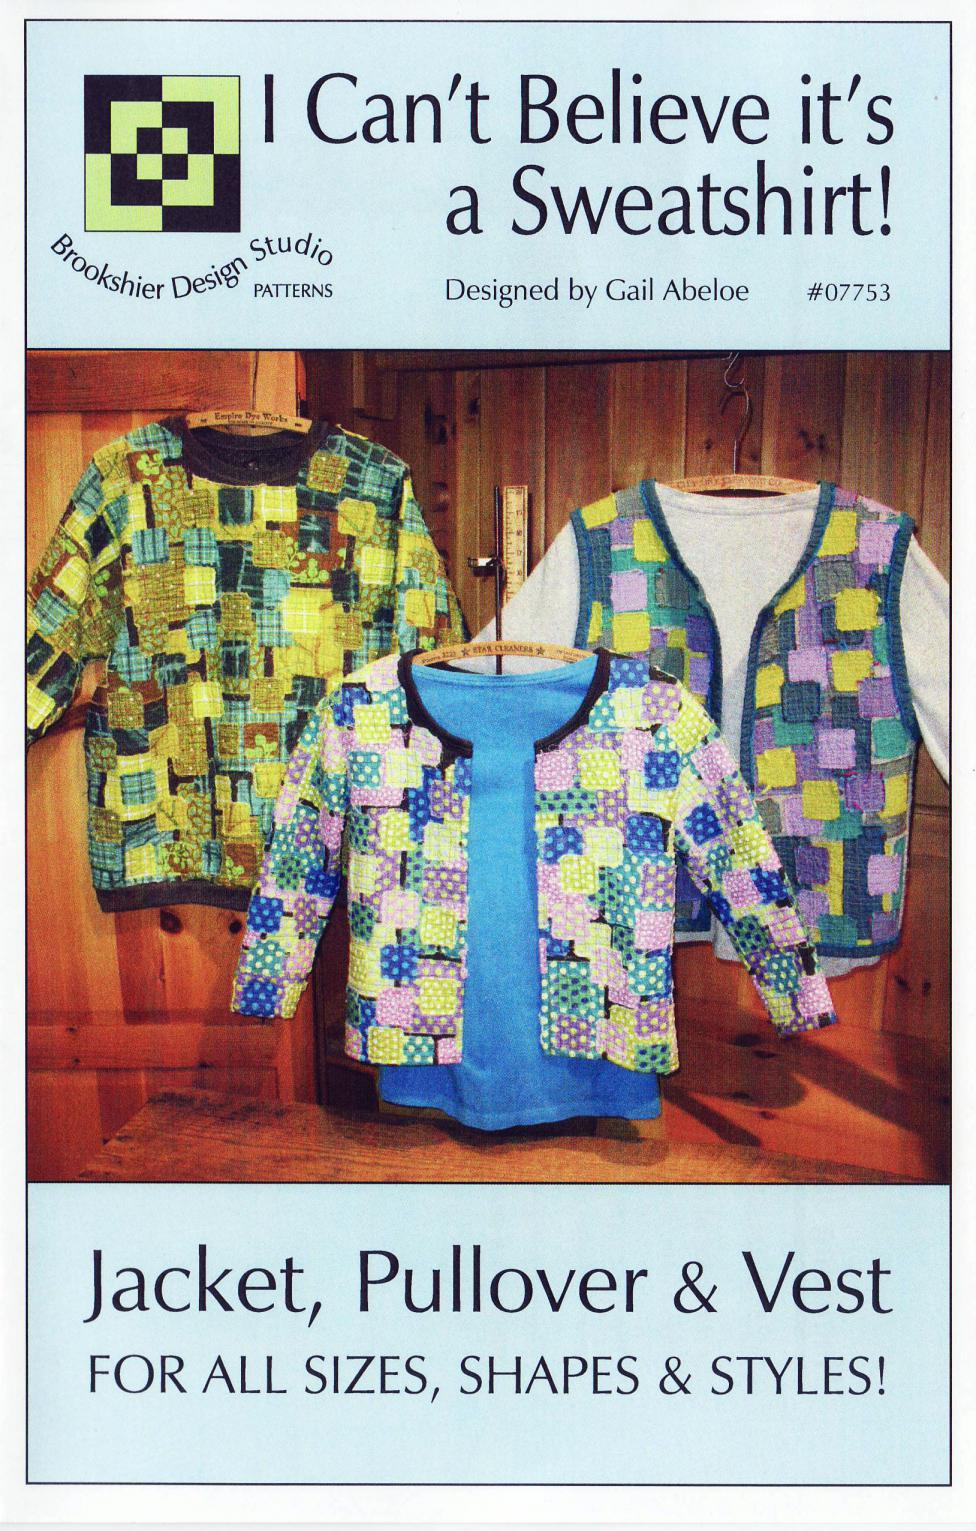 I Can't Believe It's A Sweatshirt jacket sewing pattern from Brookshier Design Studio